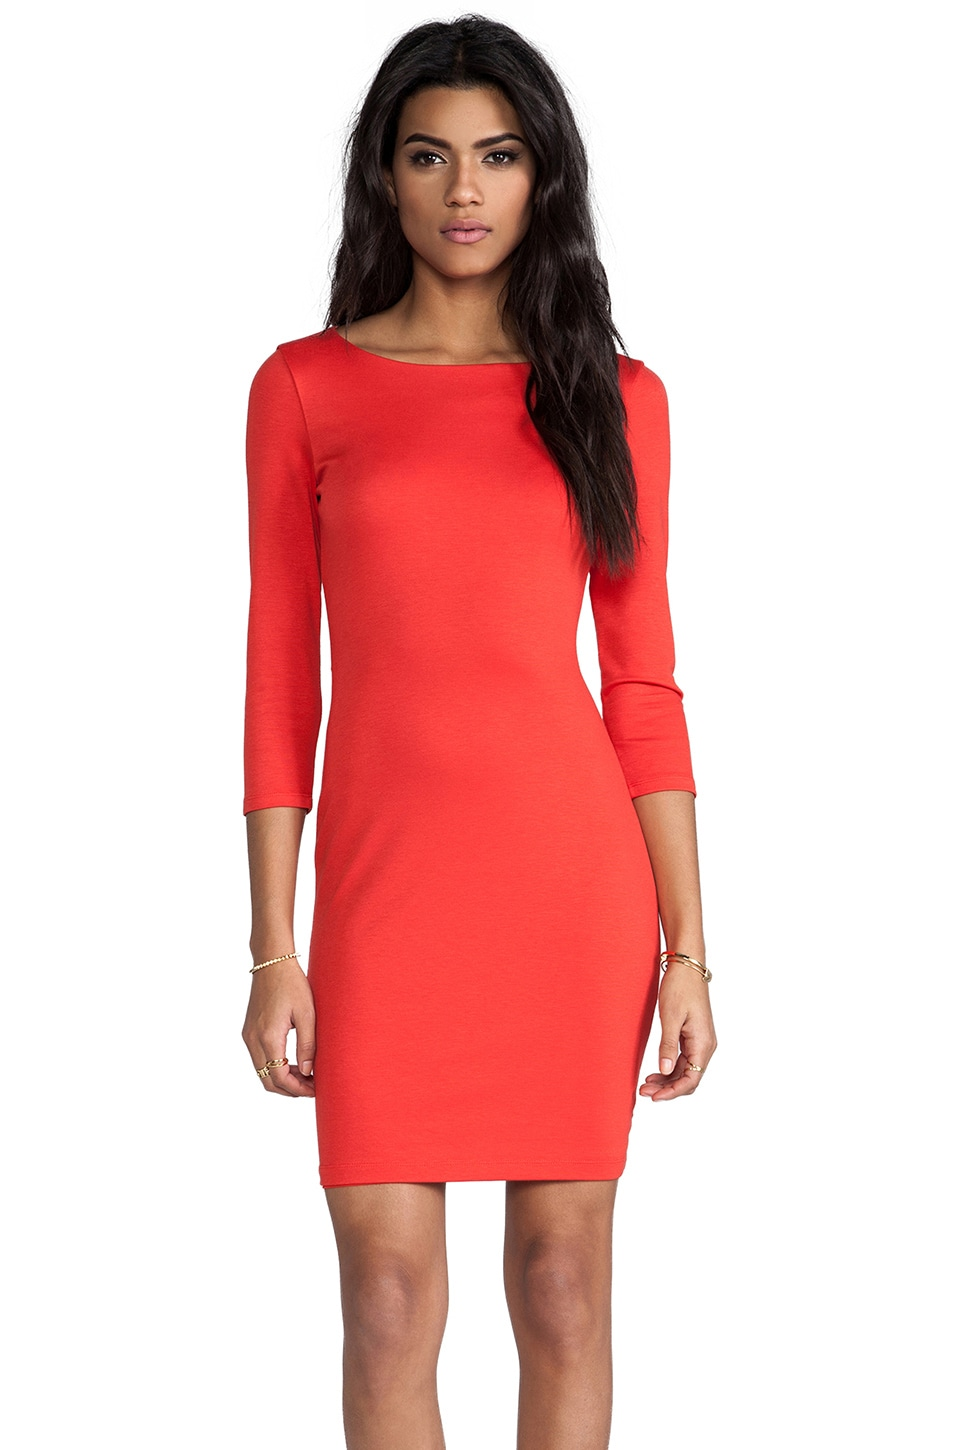 Alice + Olivia Selby 3/4 Sleeve Cutout Back Dress in Poppy